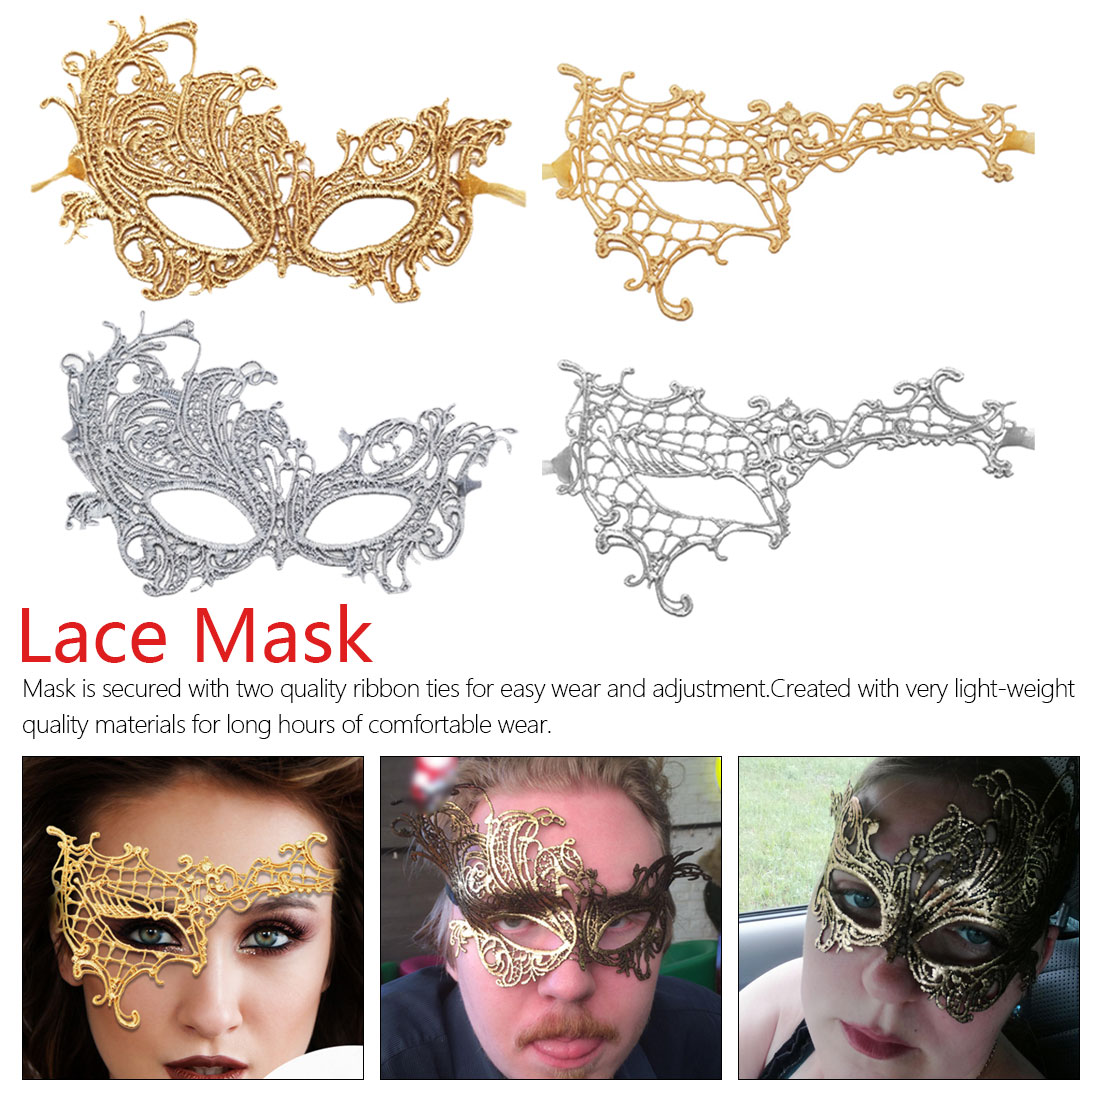 1pcs Women <font><b>Lace</b></font> Eye Bronzing Face <font><b>Mask</b></font> Masquerade Party Carnival Ball Prom <font><b>Halloween</b></font> Costume Decor <font><b>Sexy</b></font> Party <font><b>Masks</b></font> image